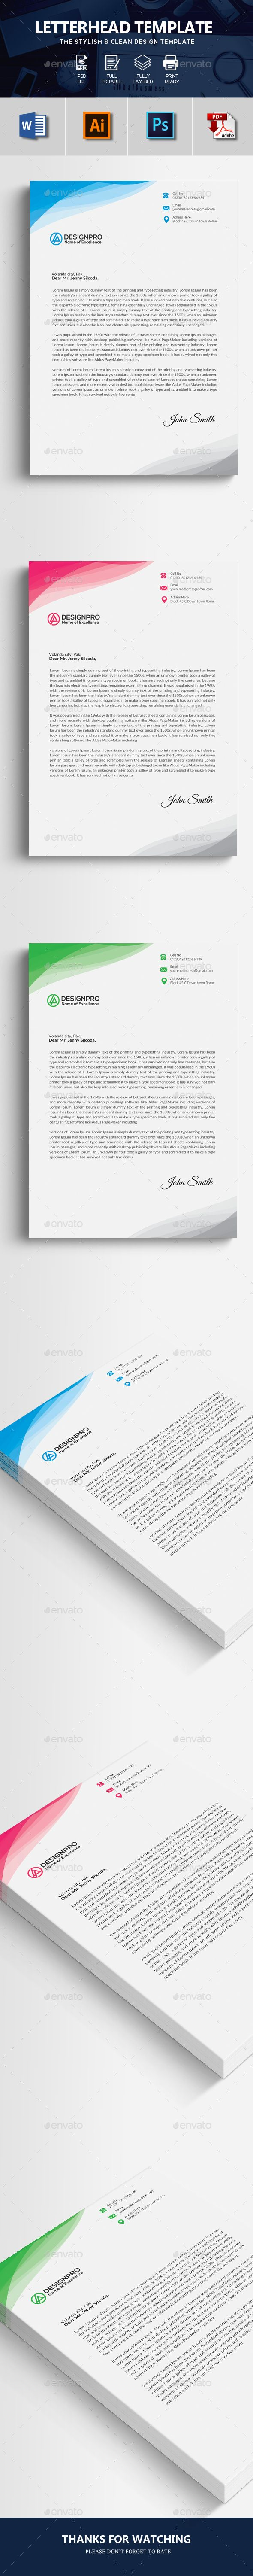 Free Microsoft Word Letterhead Templates Awesome Letterhead Template  Pinterest  Green Landscape File Format And Fonts